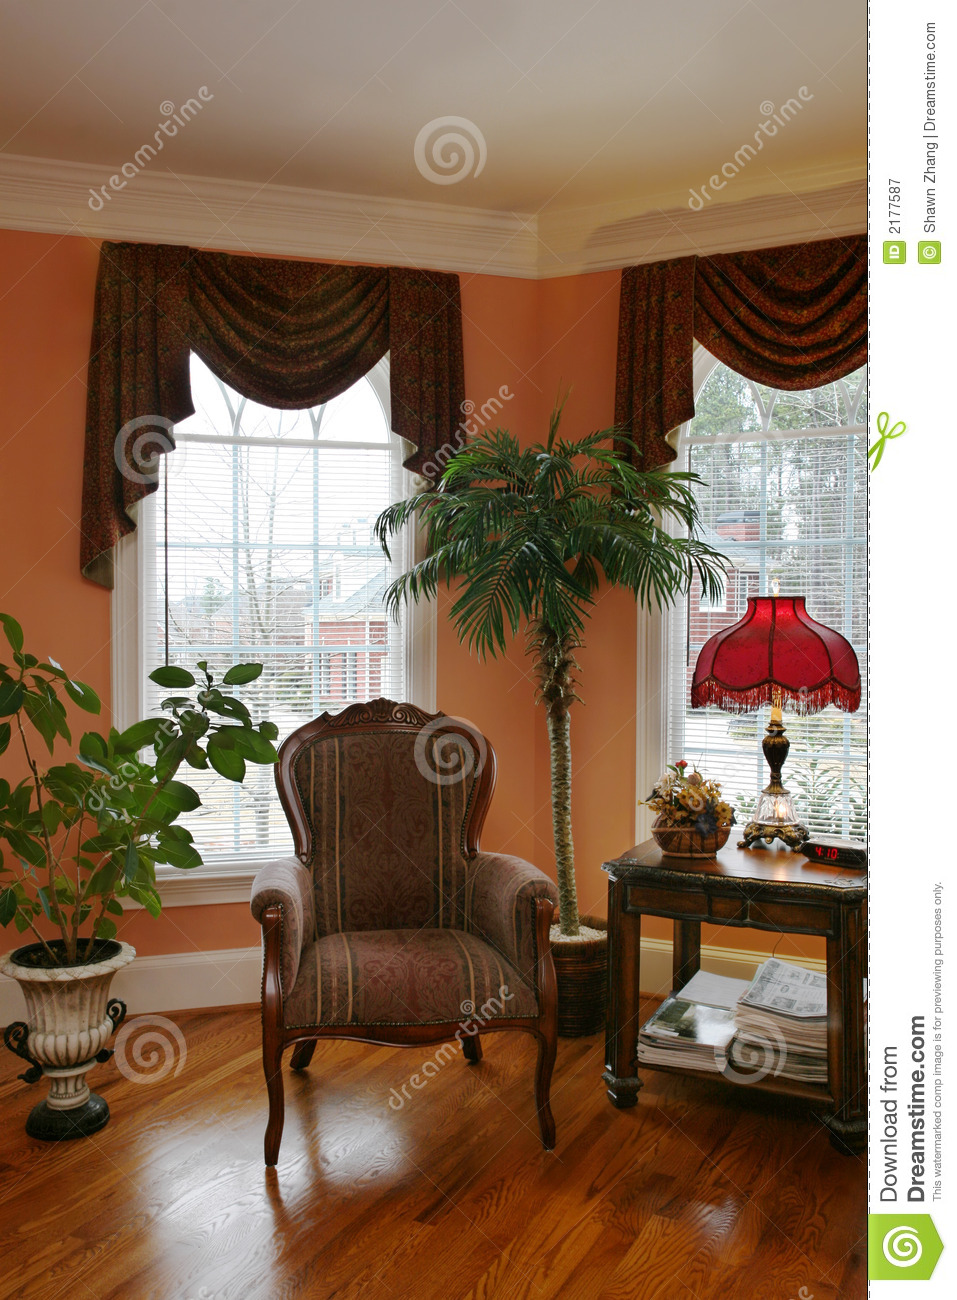 bay window living room living room with bay window stock image image 2177587 14417